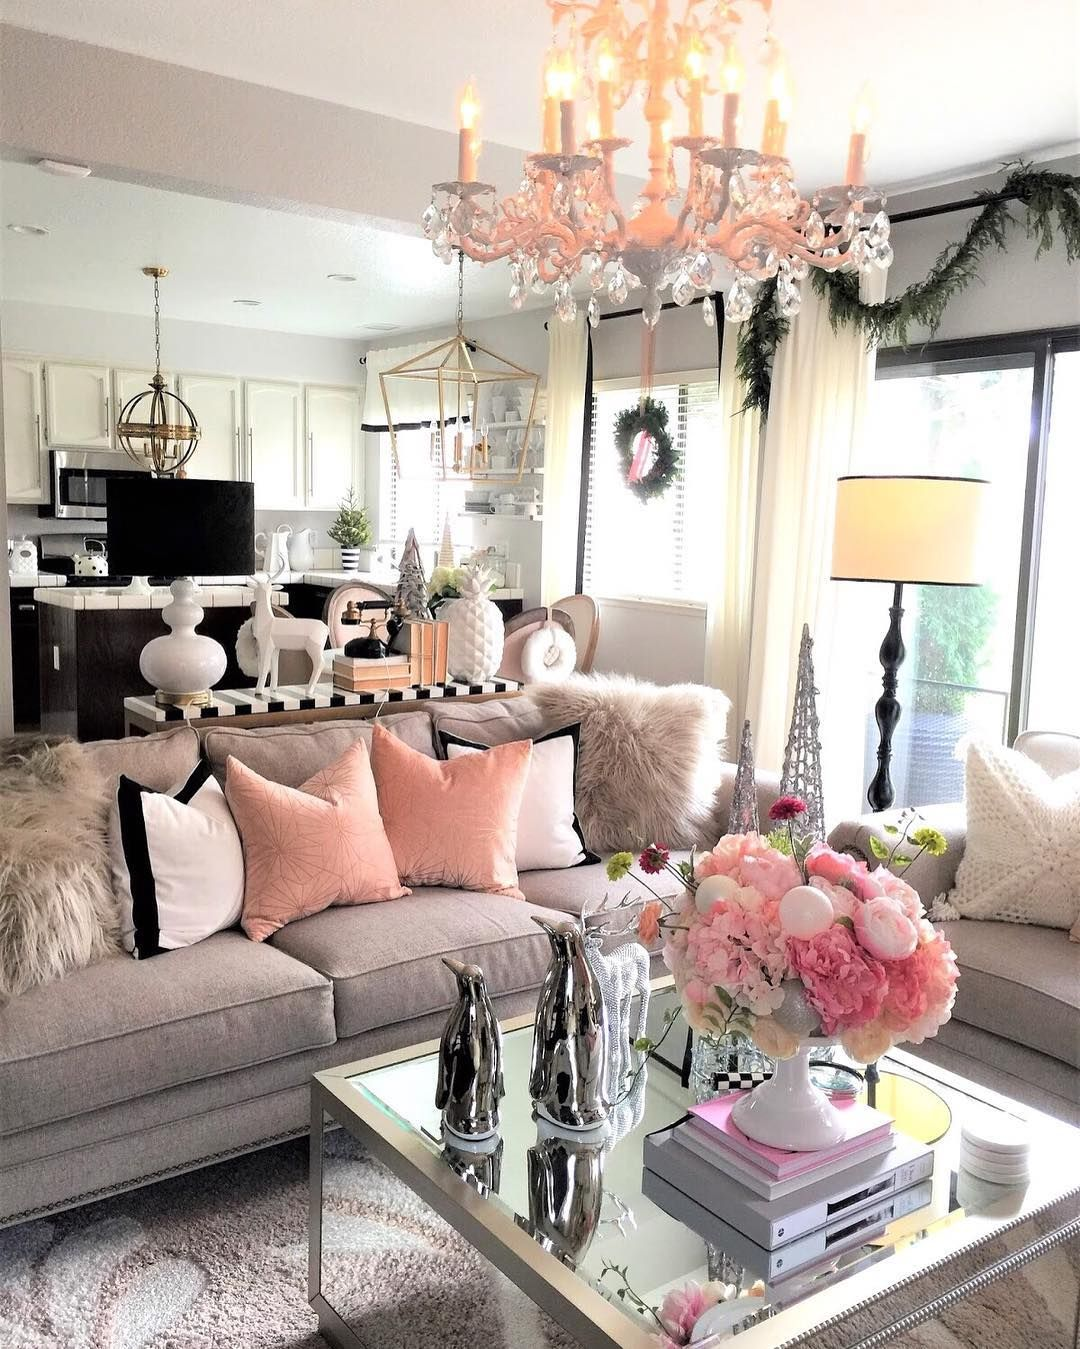 Grey living room ideas grey and red living room grey and pink living room grey living room inspiration grey couch living room room